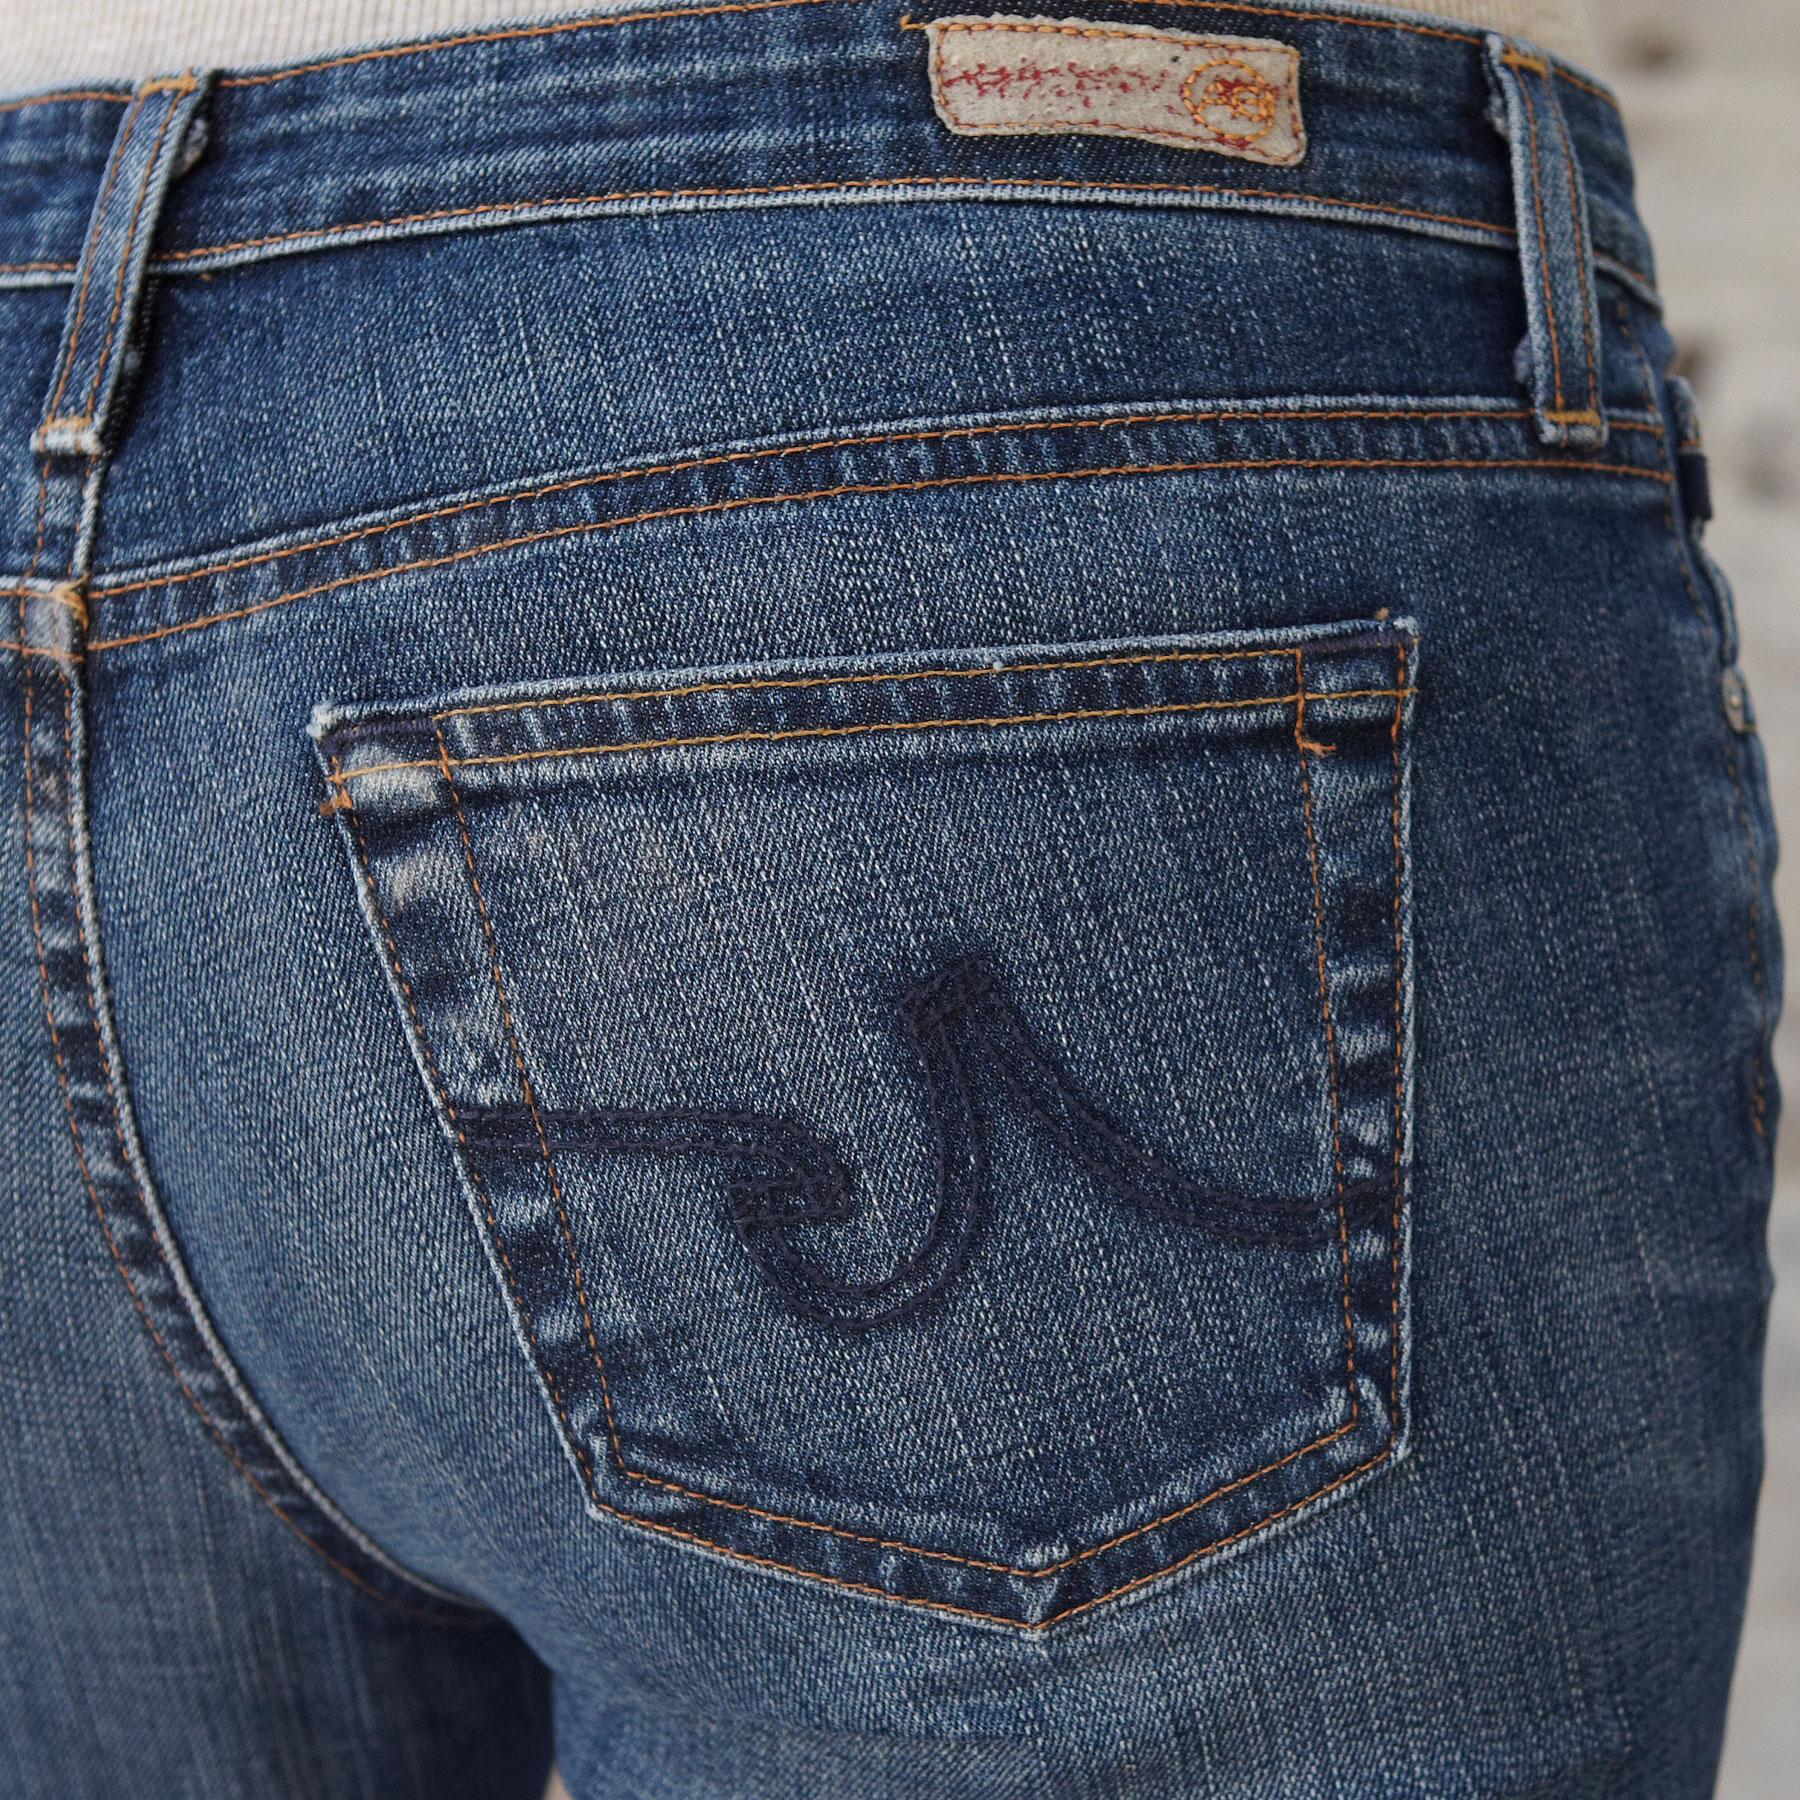 A G ANGEL MOMENT JEANS: View 3